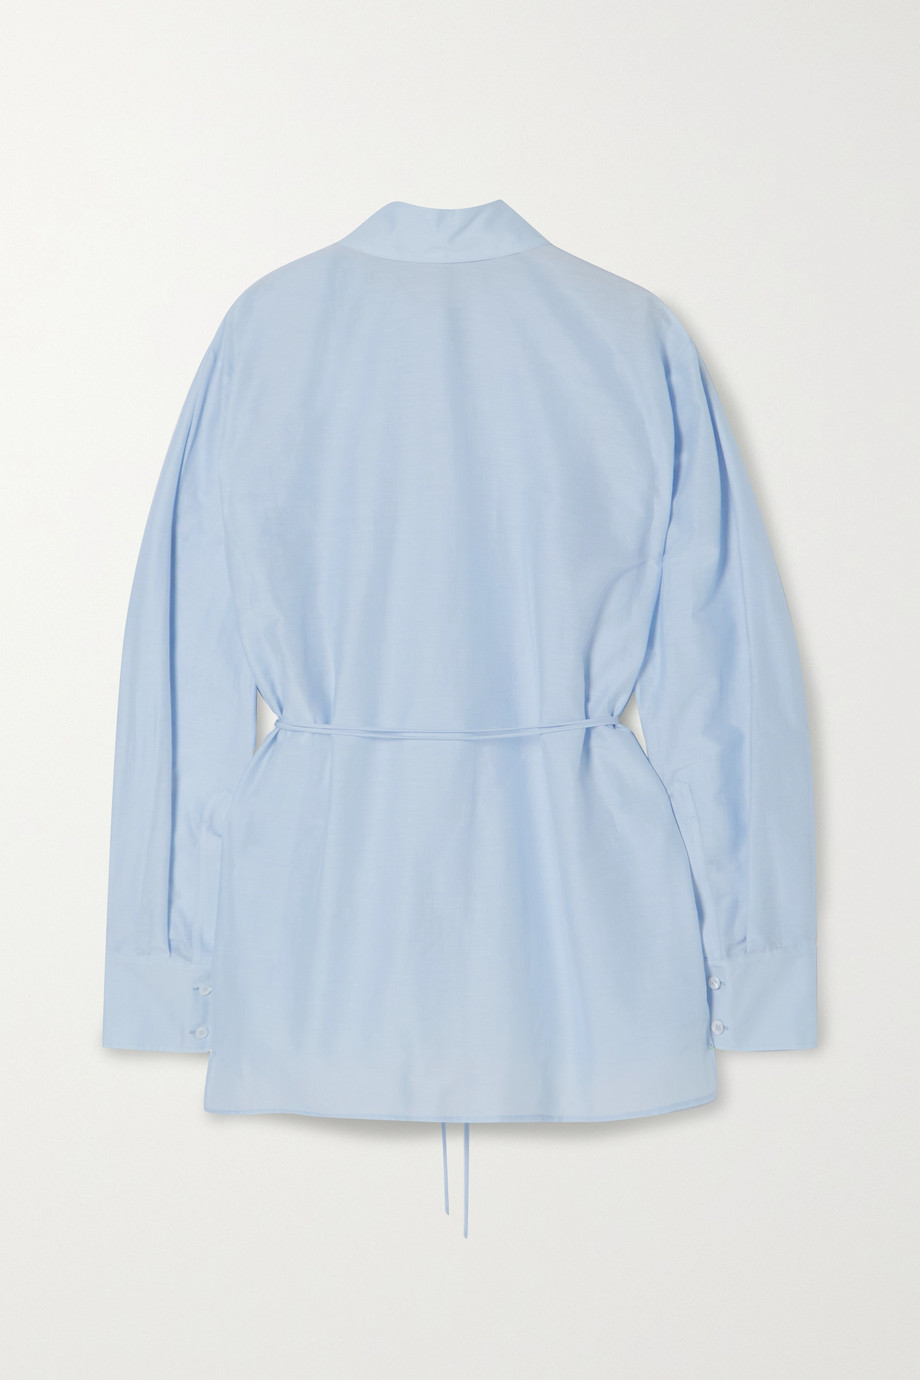 Stella McCartney + NET SUSTAIN tie-detailed scalloped organic cotton and silk-blend poplin shirt